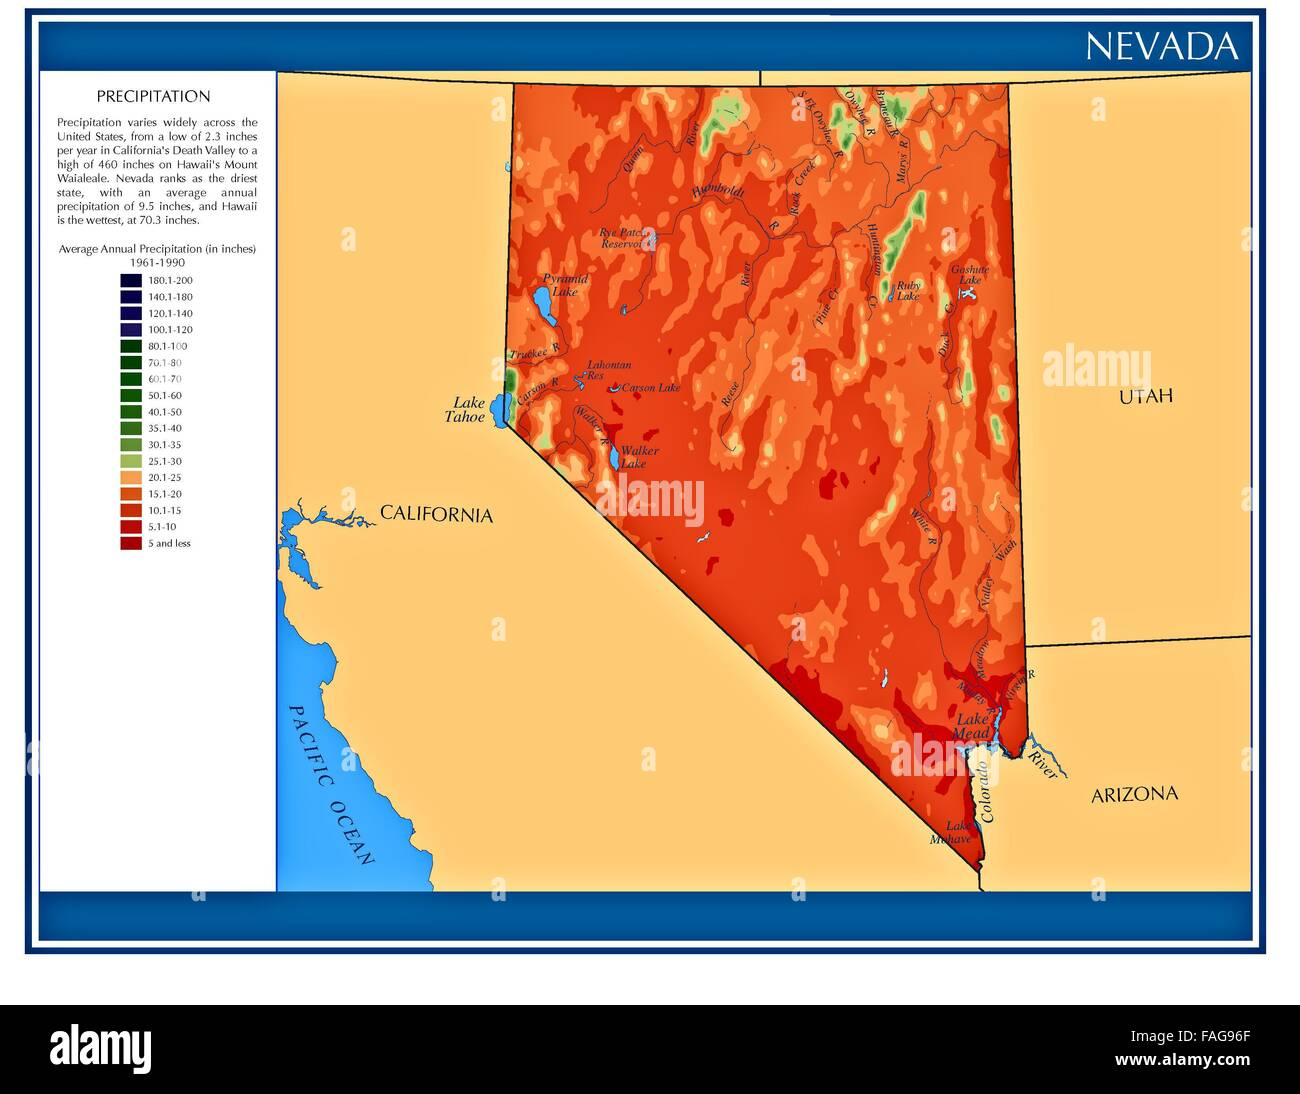 Nevada Rainfall Map Nevada United States water precipitation statistics map by State